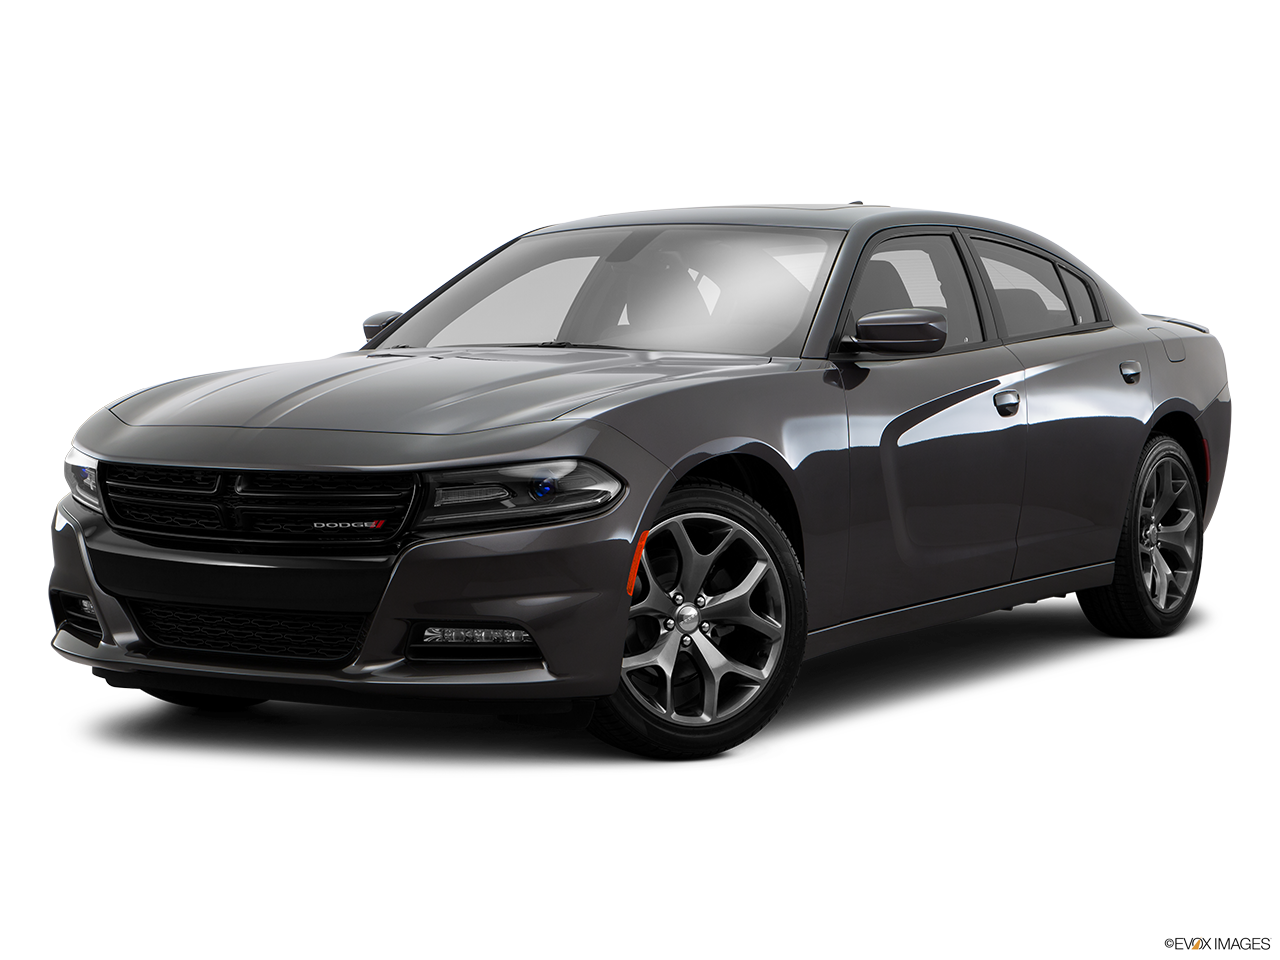 Test Drive A 2016 Dodge Charger at John L Sullivan Chrysler Dodge Jeep Ram in Yuba City